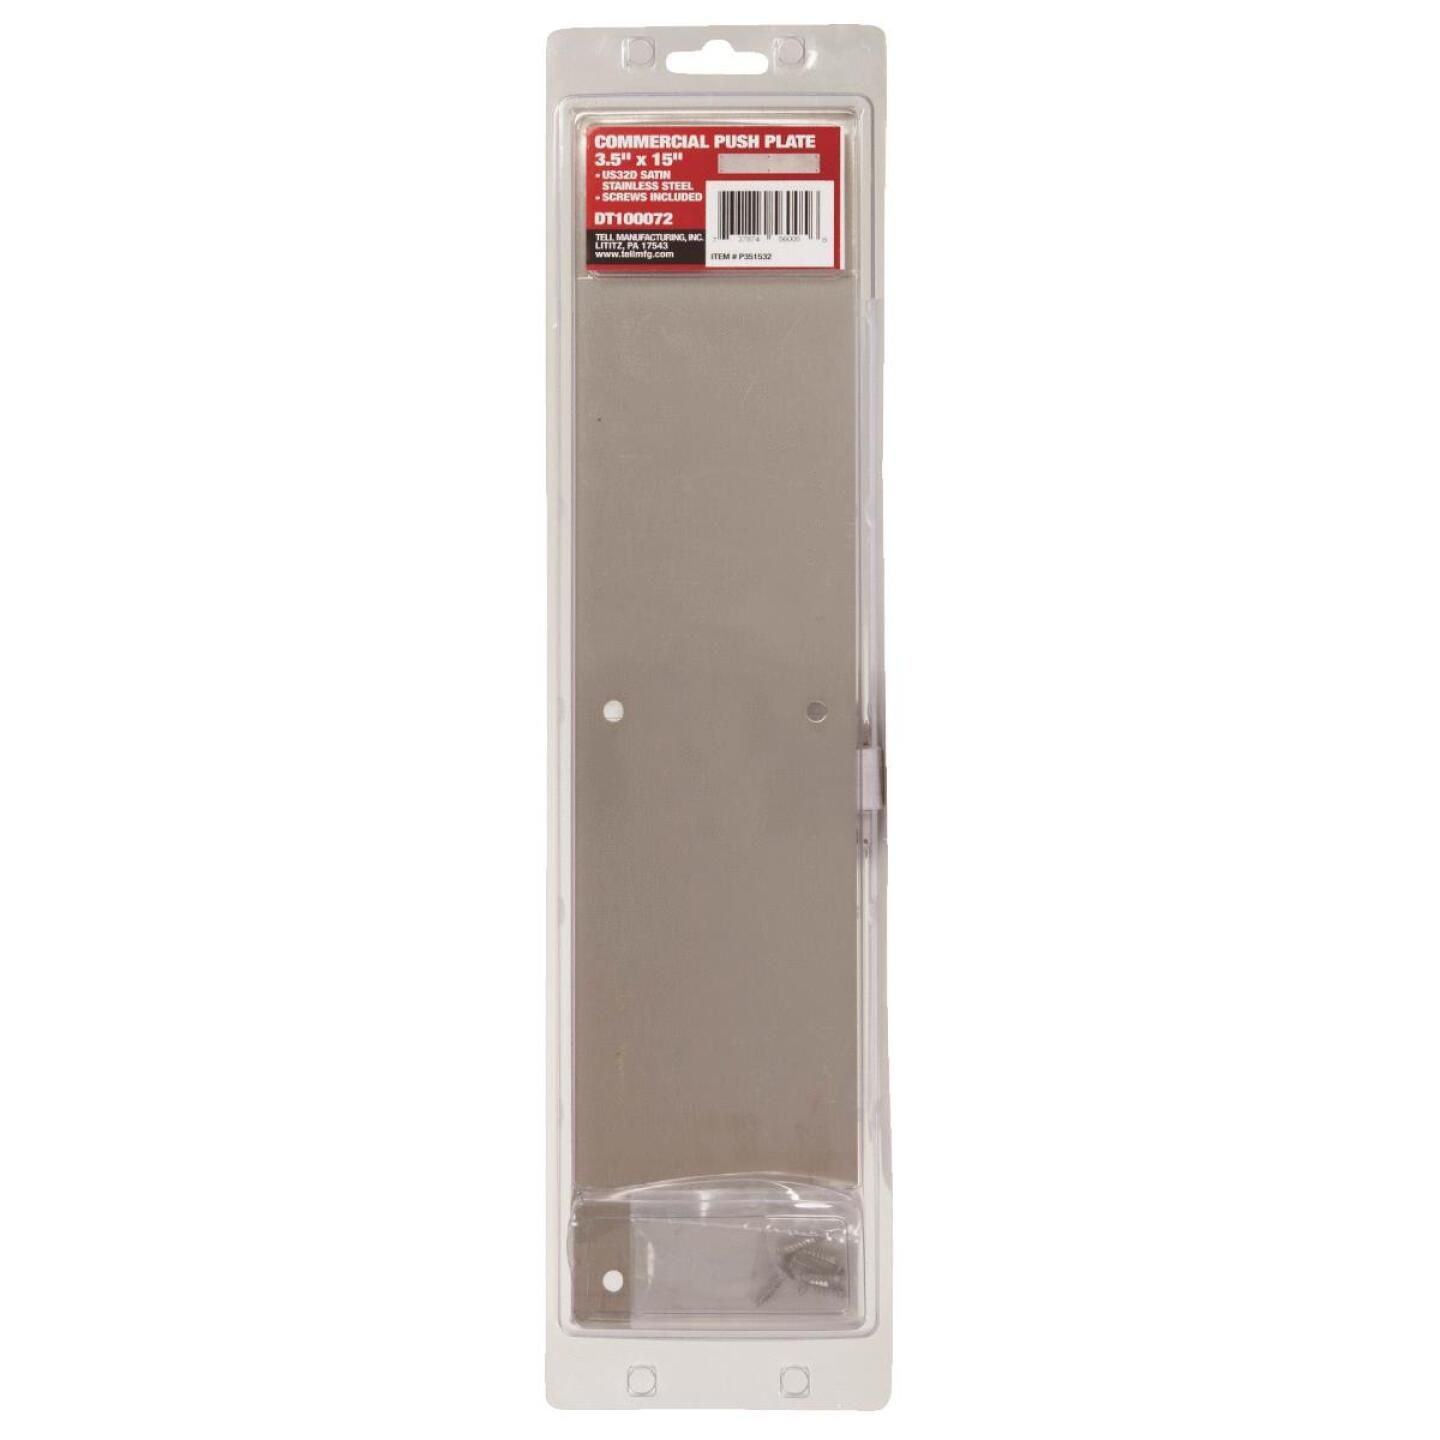 Tell 3.5 In. x 15 In. Stainless Steel Push Plate Image 2